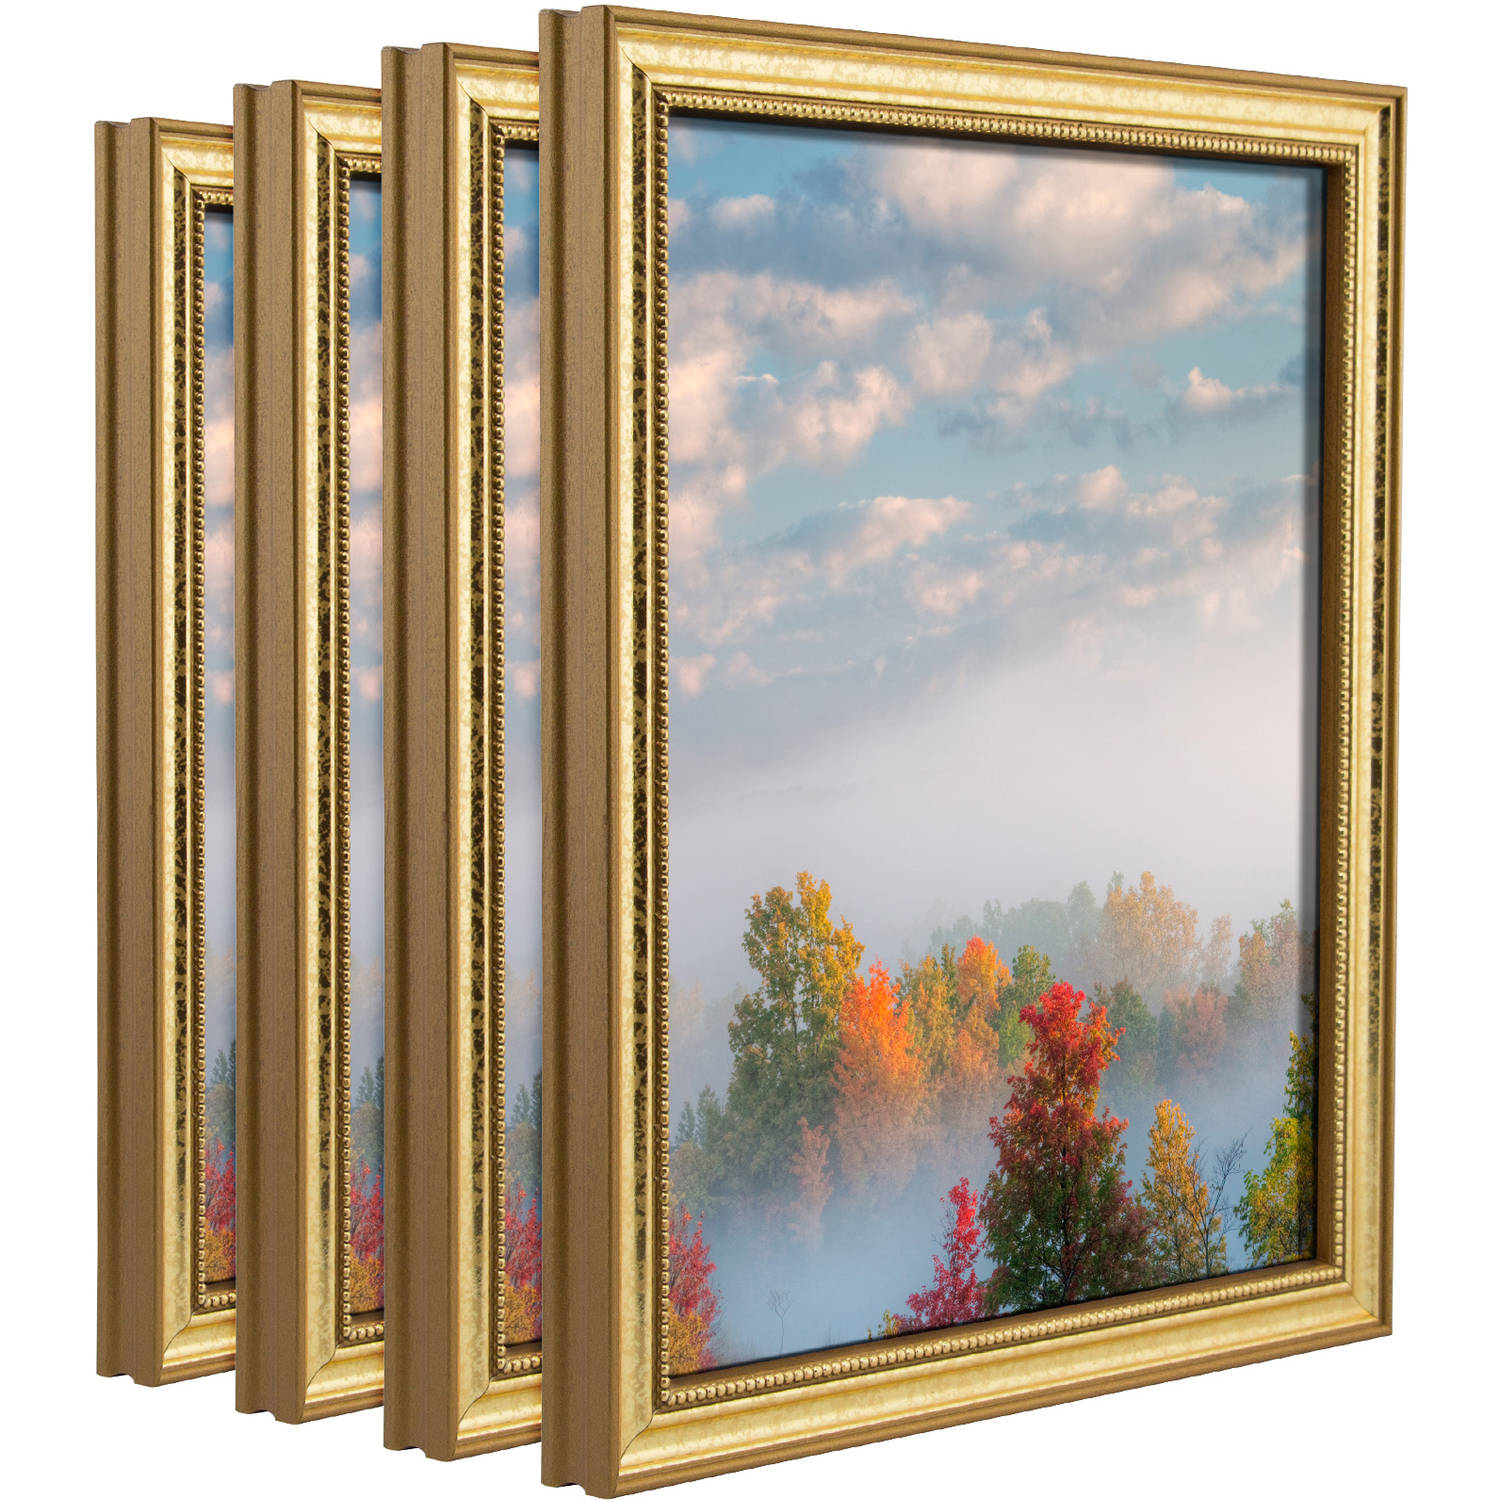 Craig Frames Stratton Aged Gold Queen Ann Picture Frame, Set of 4